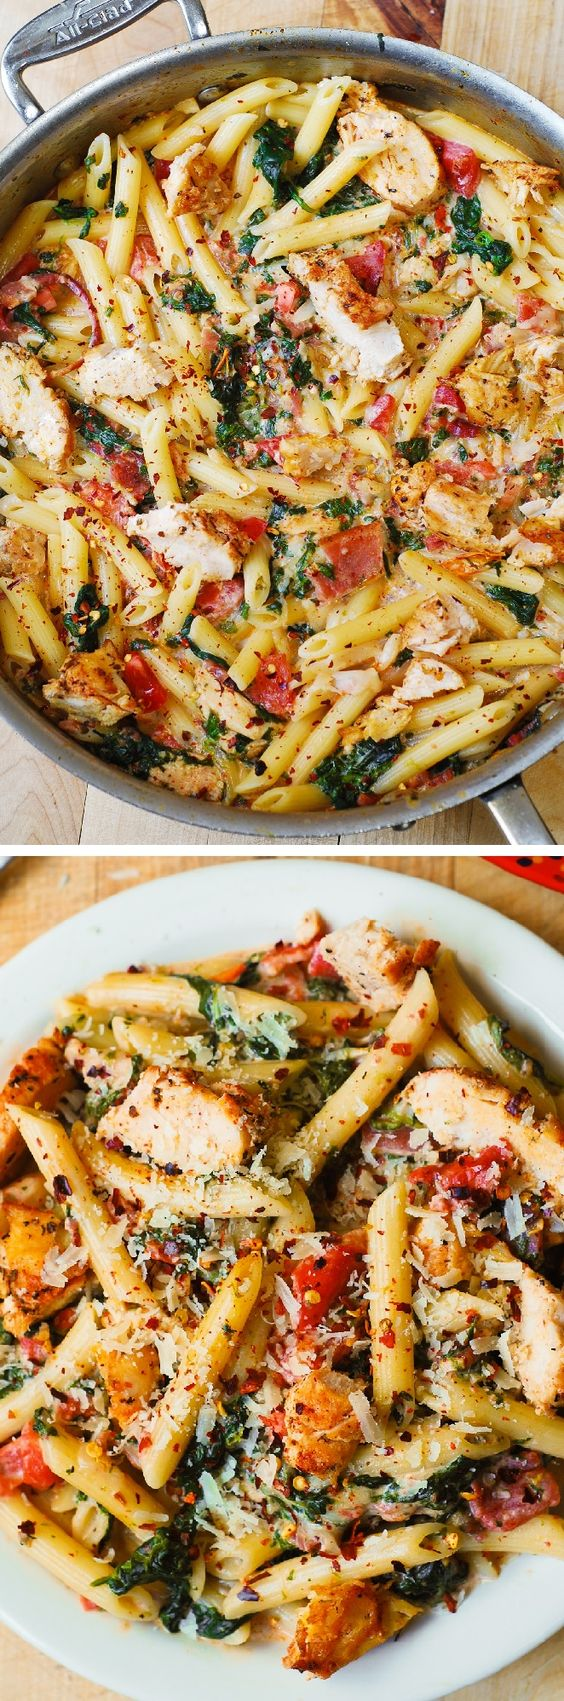 Chicken and Bacon Pasta with Spinach and Tomatoes in Garlic Cream Sauce – delicious creamy sauce perfectly blends together all the flavors: bacon, garlic, spices, tomatoes. (chicken dinner ideas):